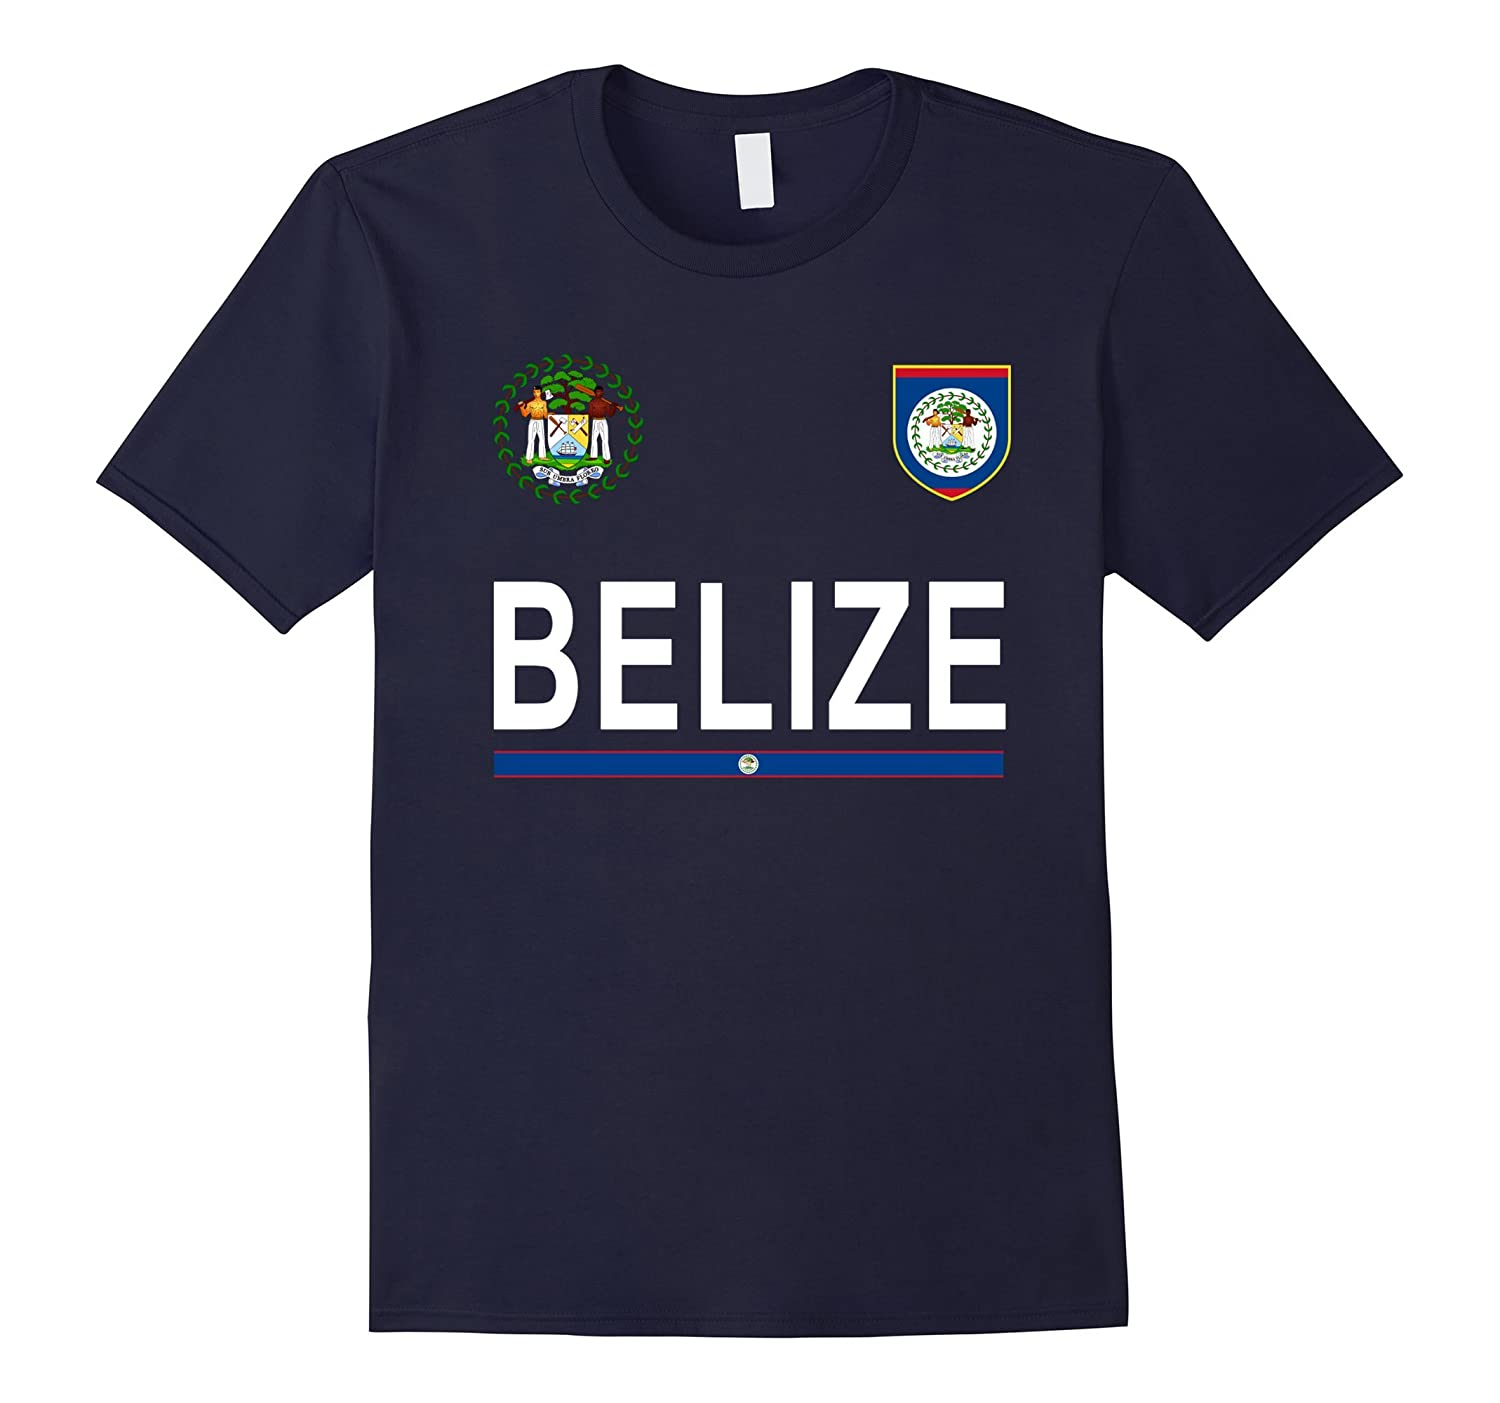 Belize Soccer T-Shirt - Belize Retro Football Jersey 2017-RT